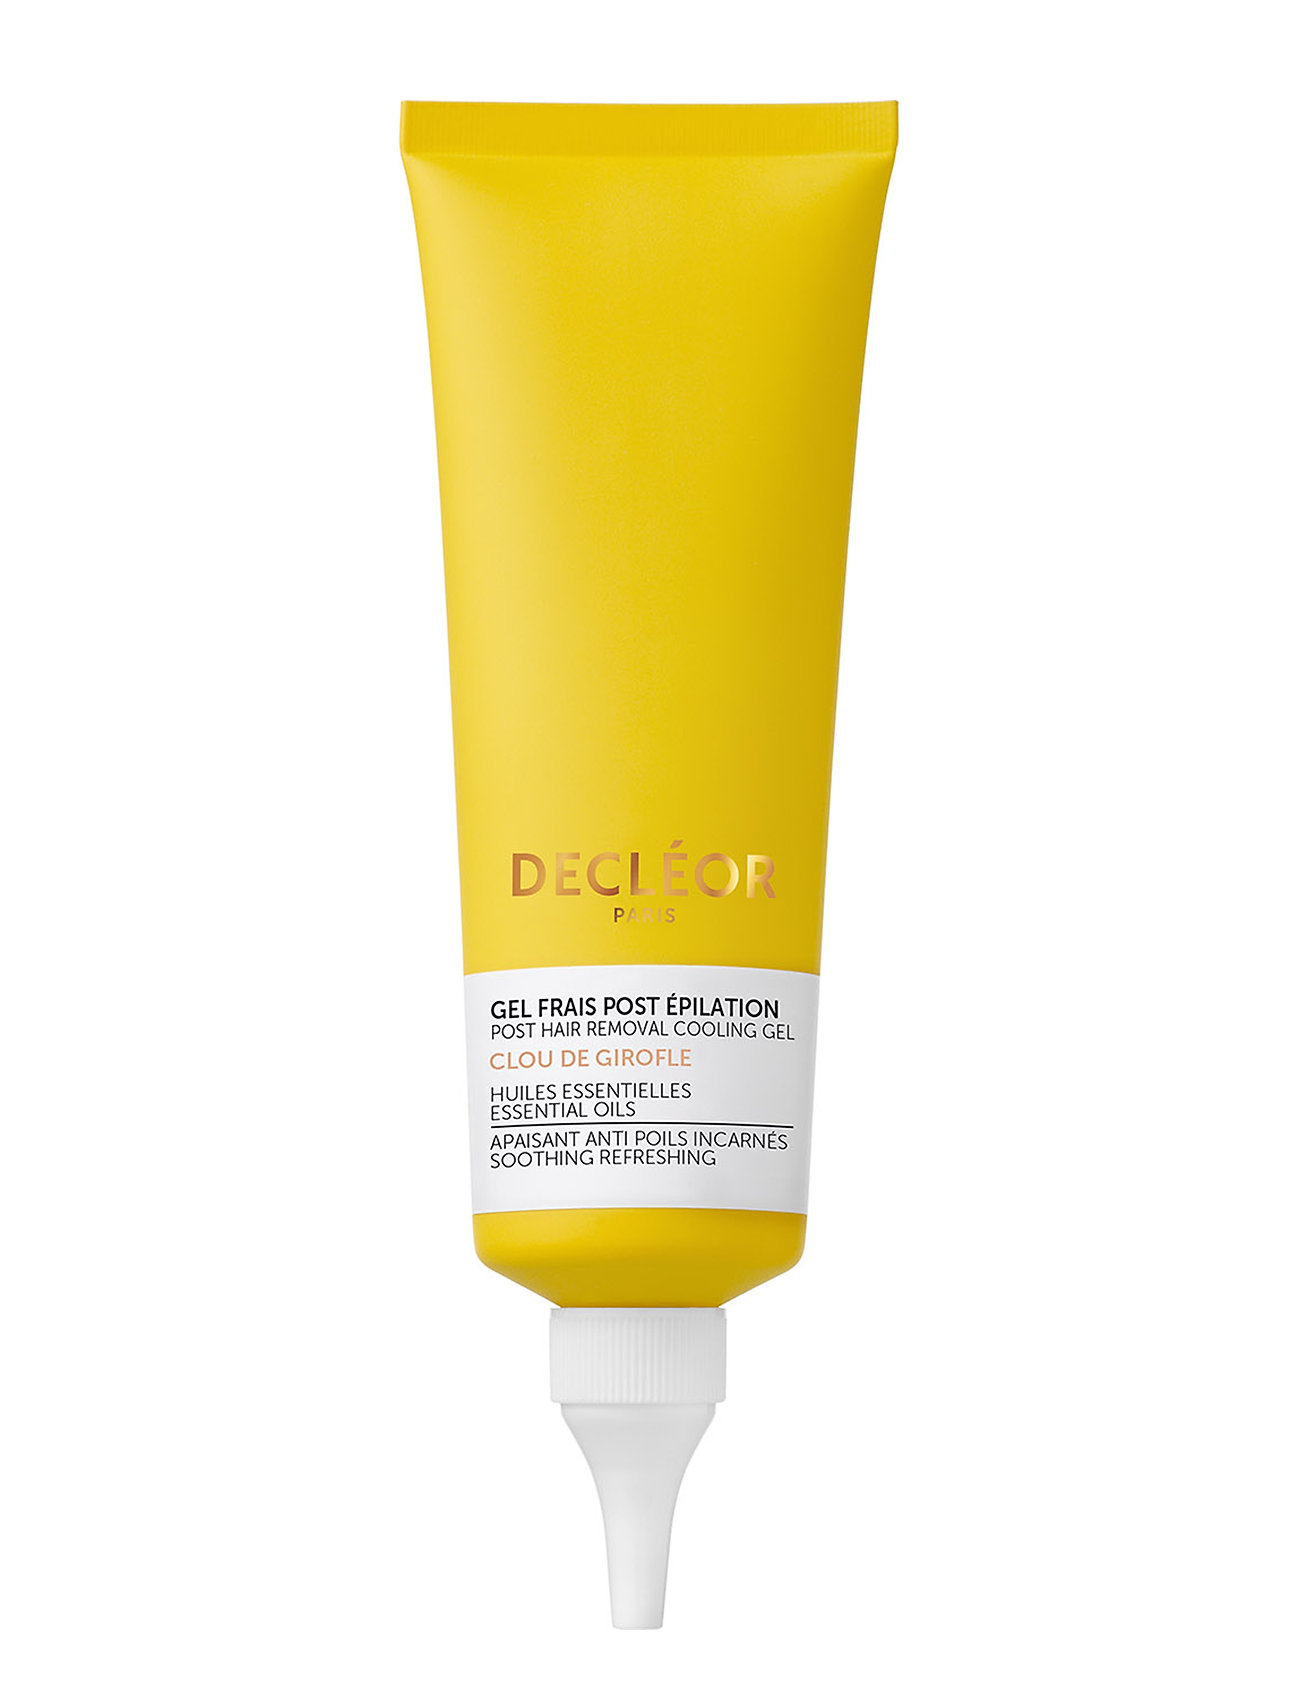 Decléor DECLEOR Post Hair Removal Cooling gel